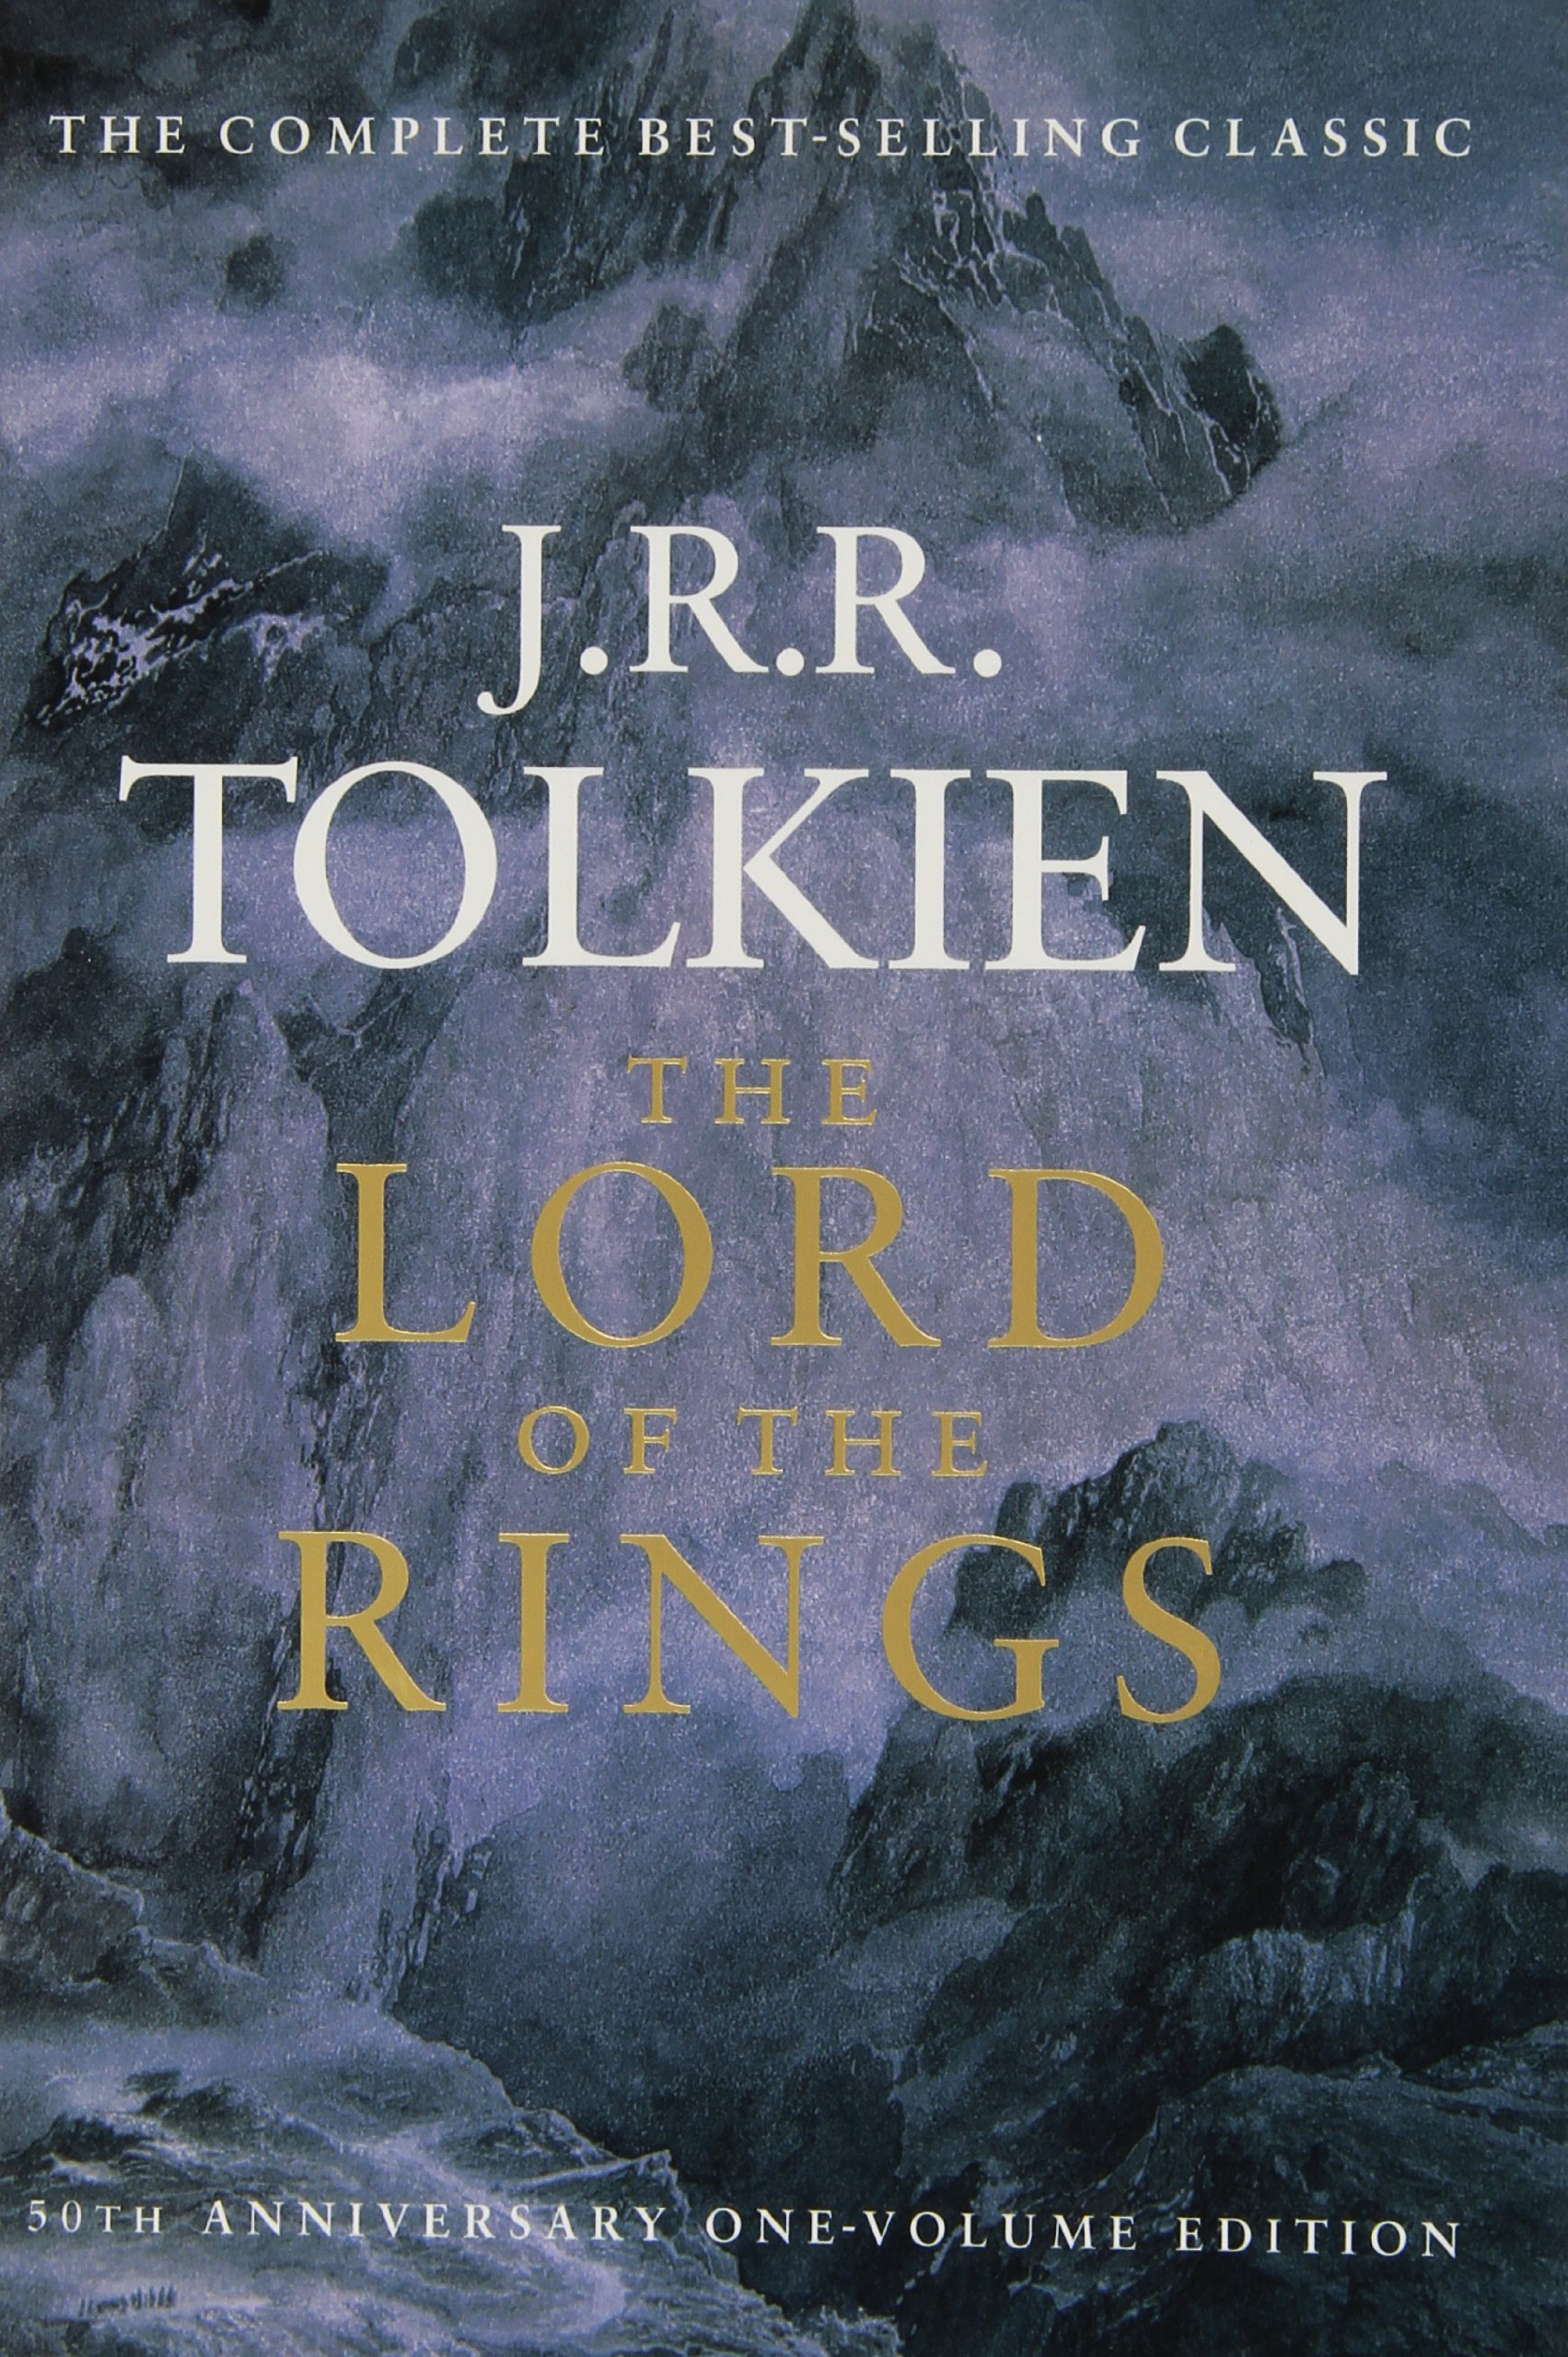 The Lord of the Rings | The One Wiki to Rule Them All